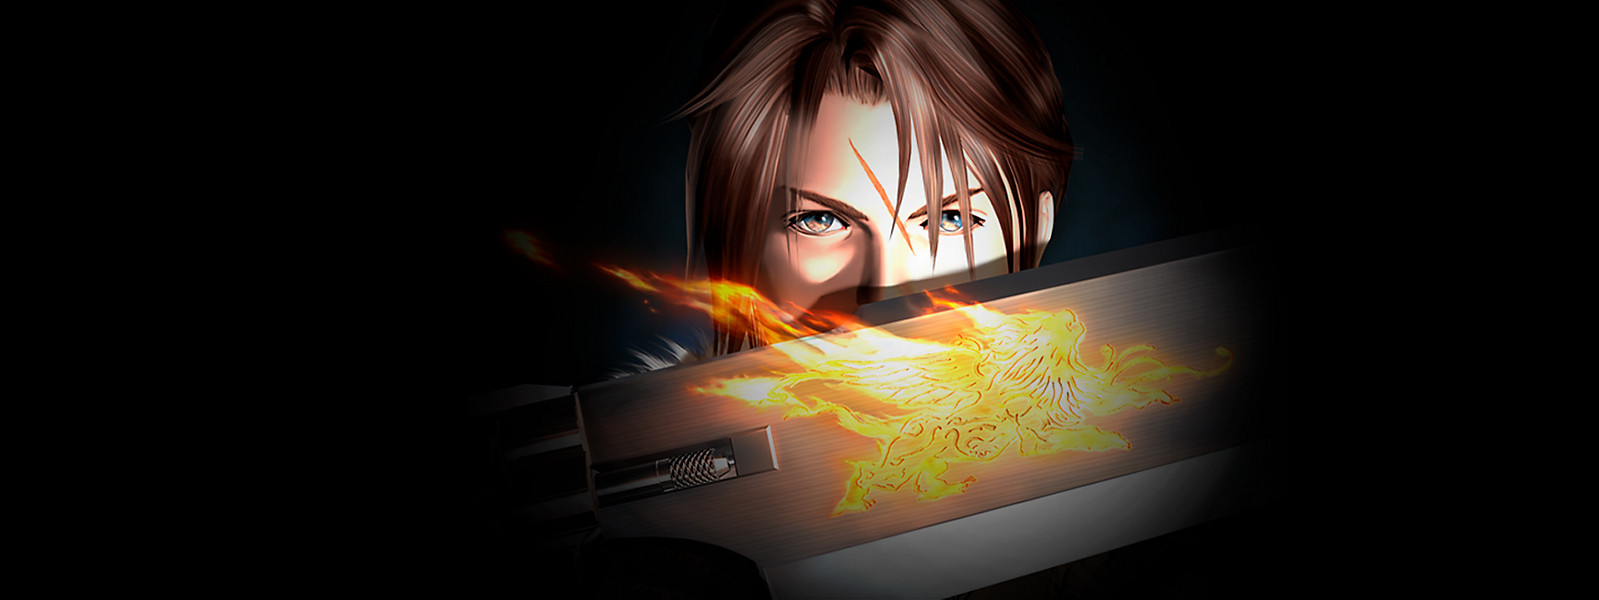 Final Fantasy VIII will never be a top PS1 RPG